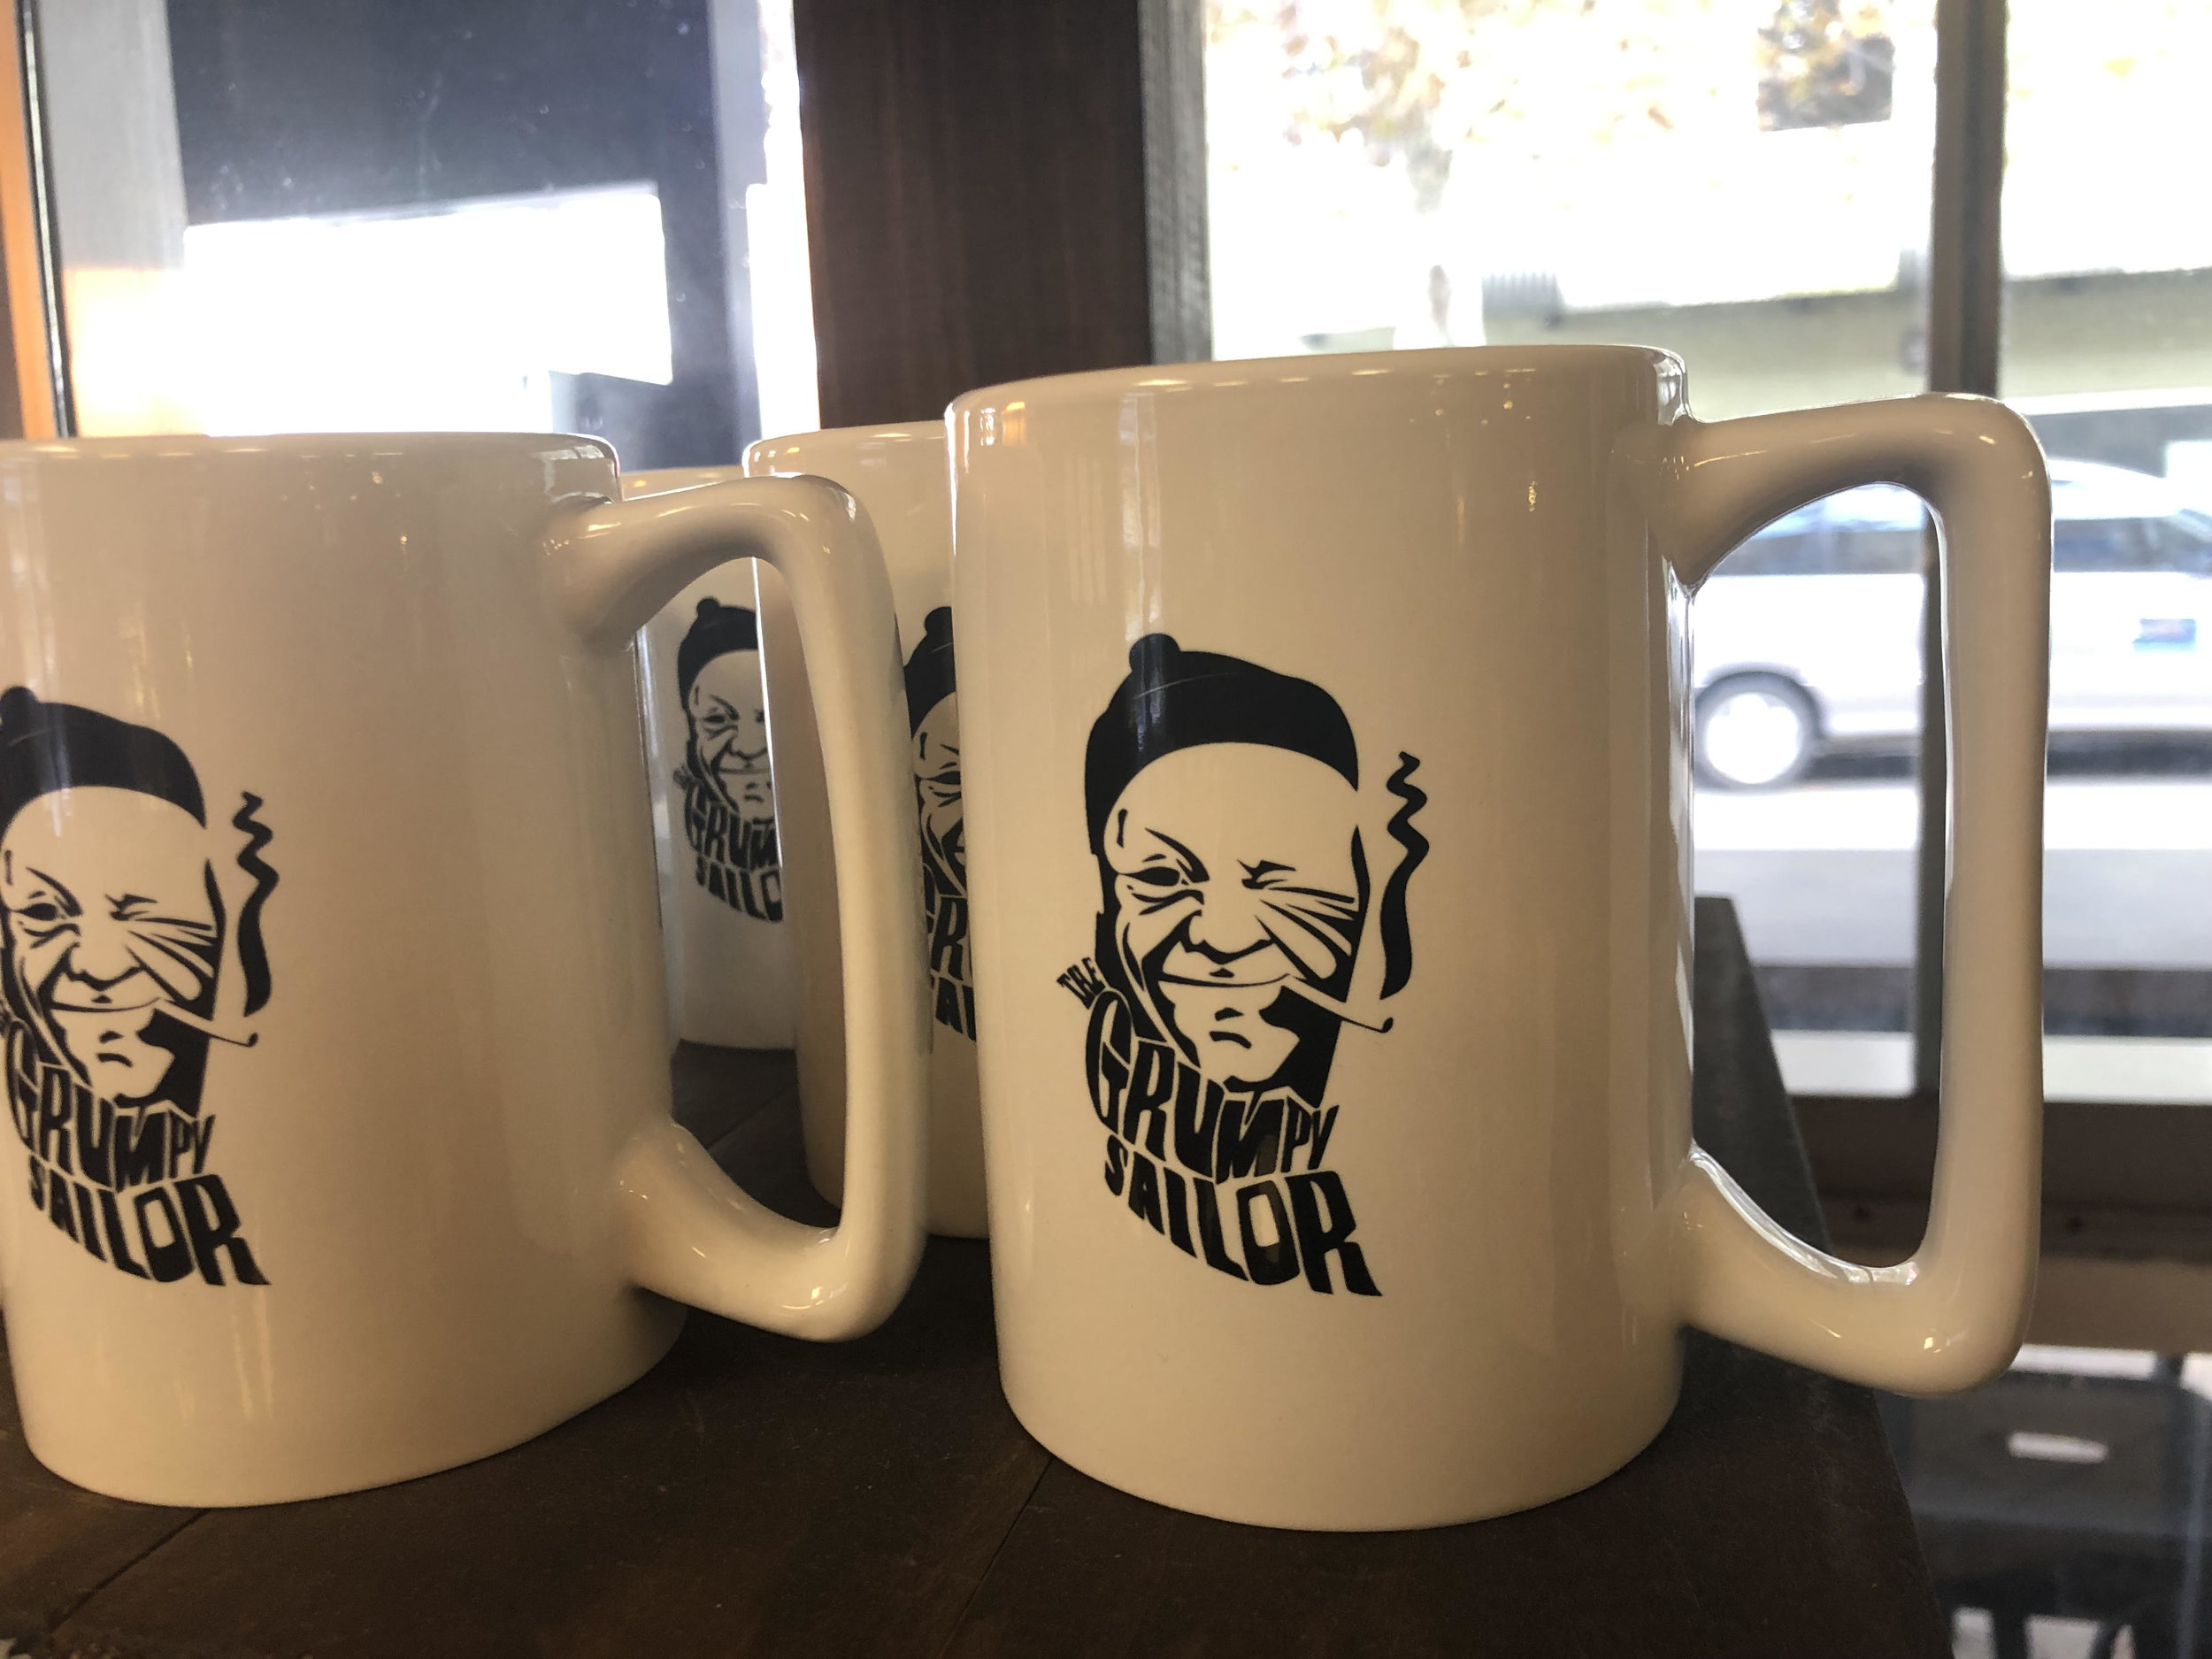 coffee mugs with cafe logo